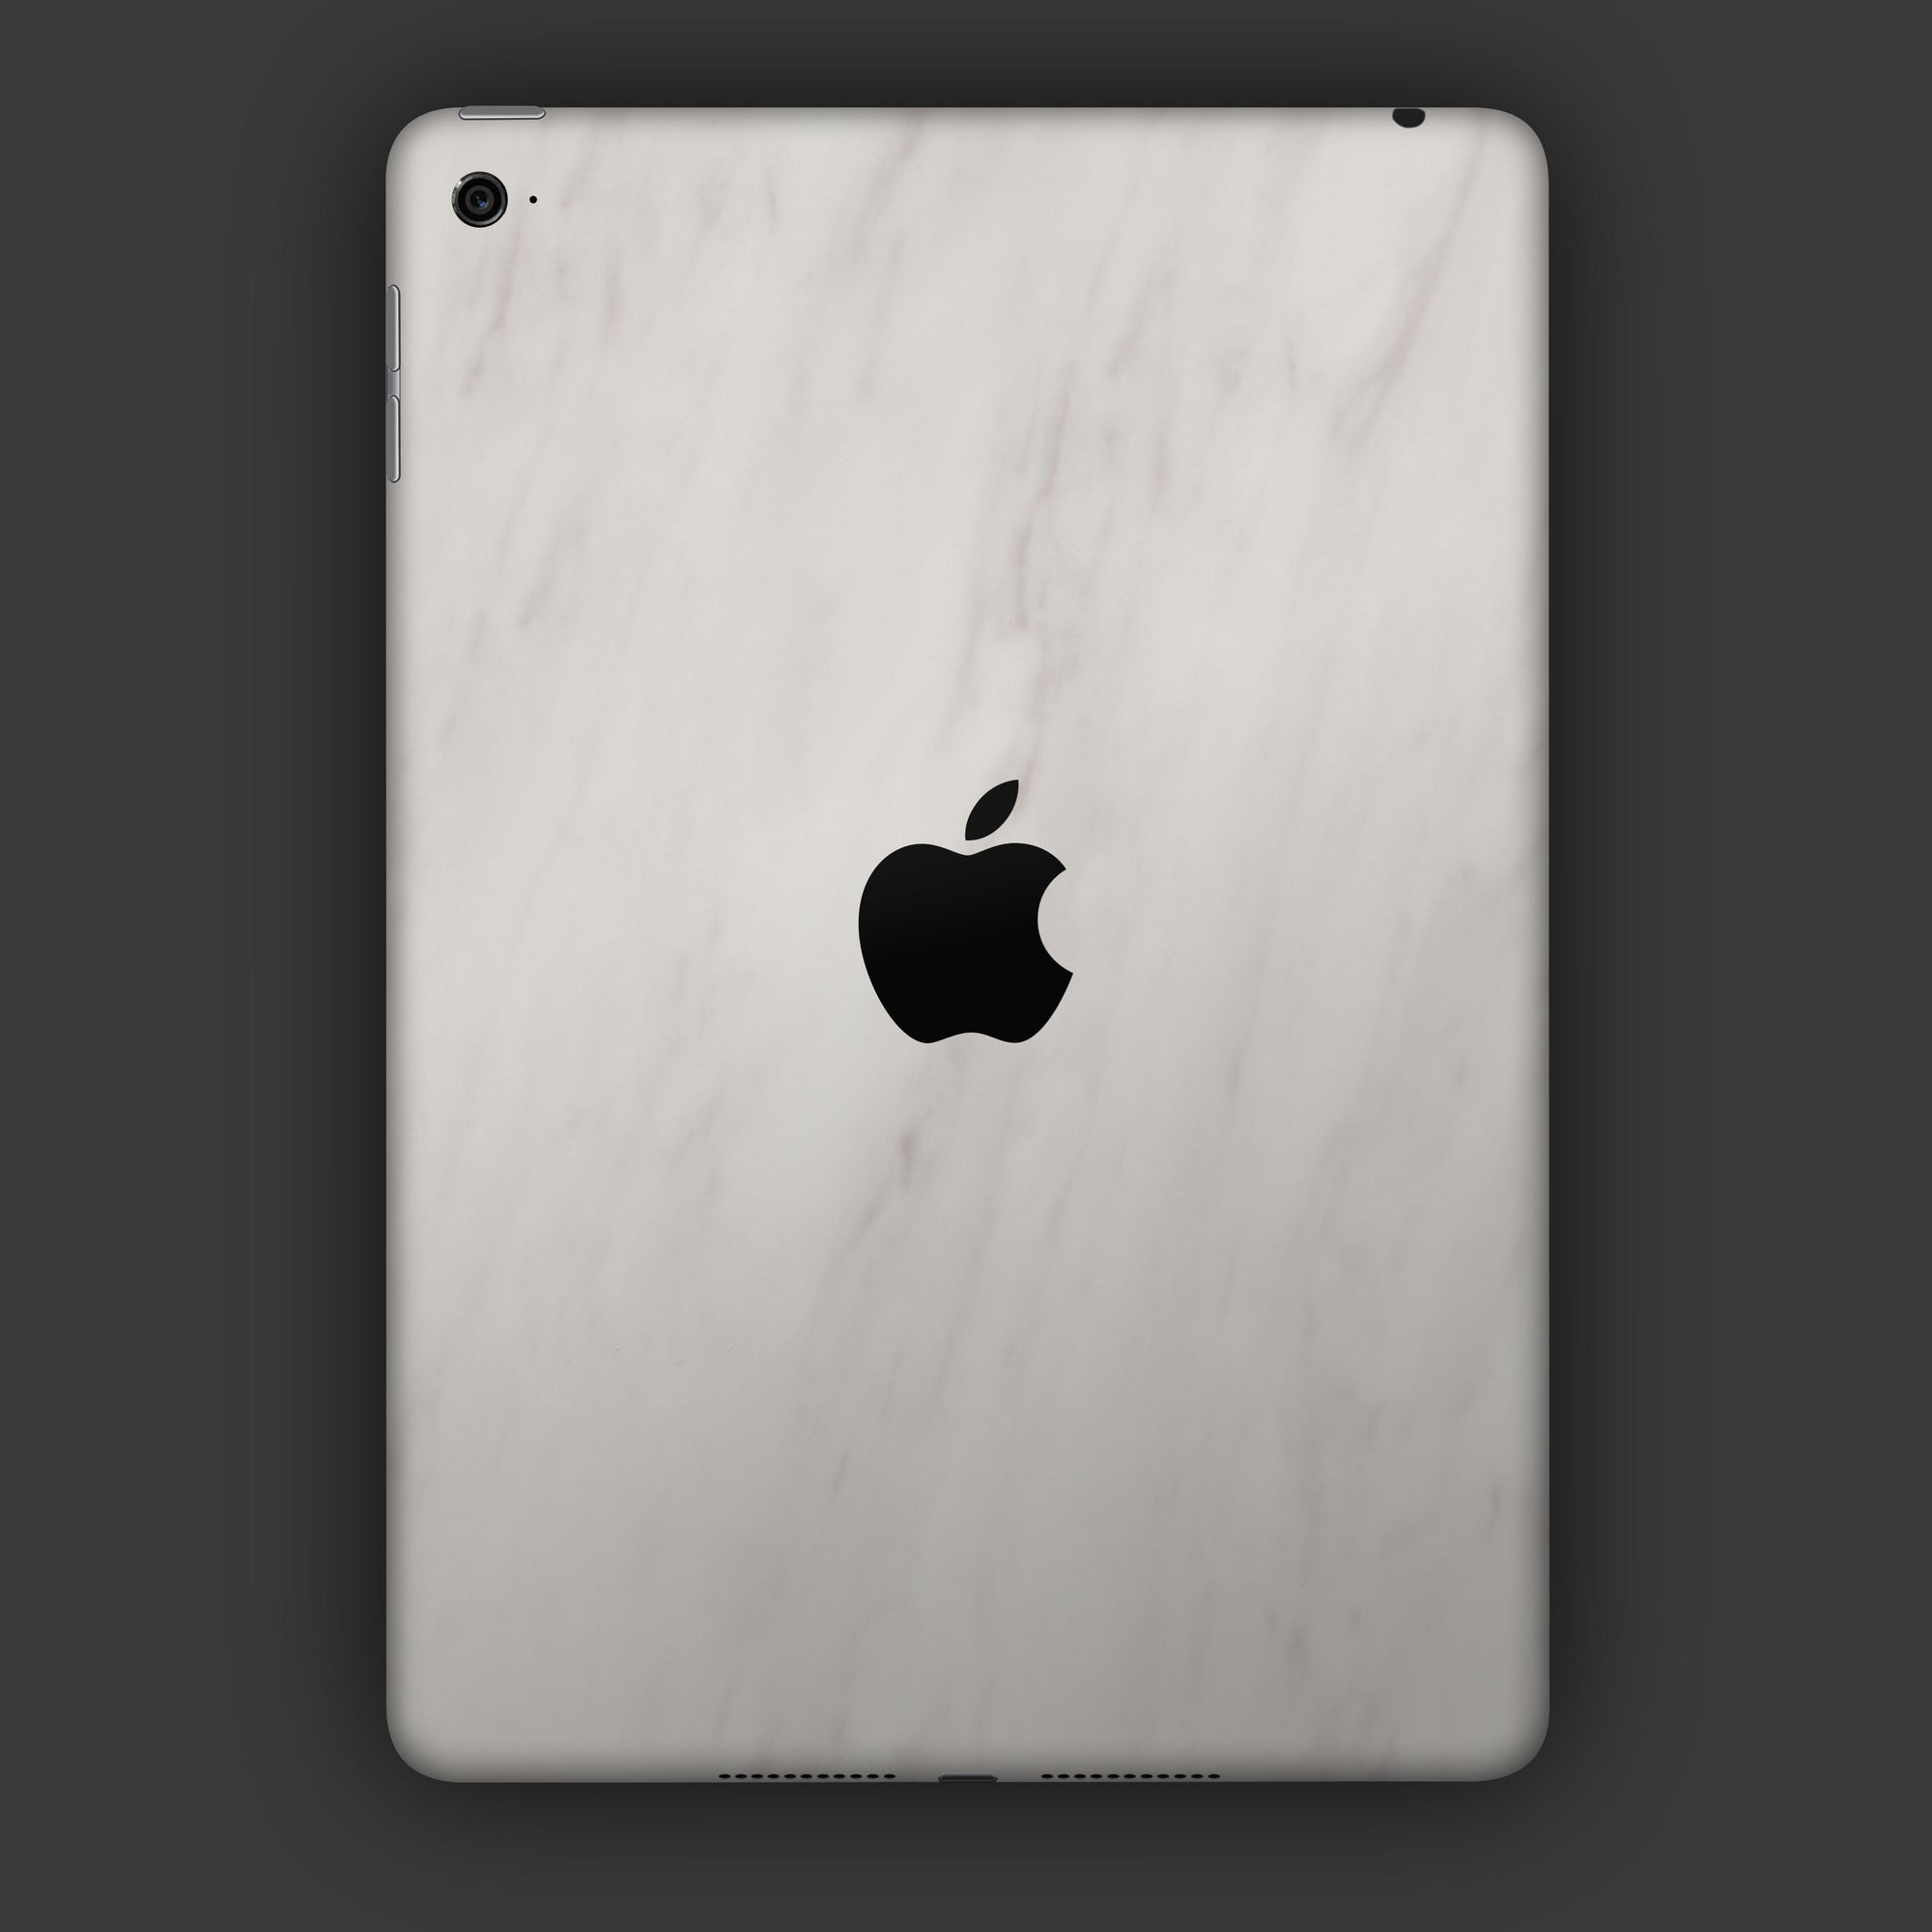 iPad-mini-4-mit-Apple-Logo-in-Marmor